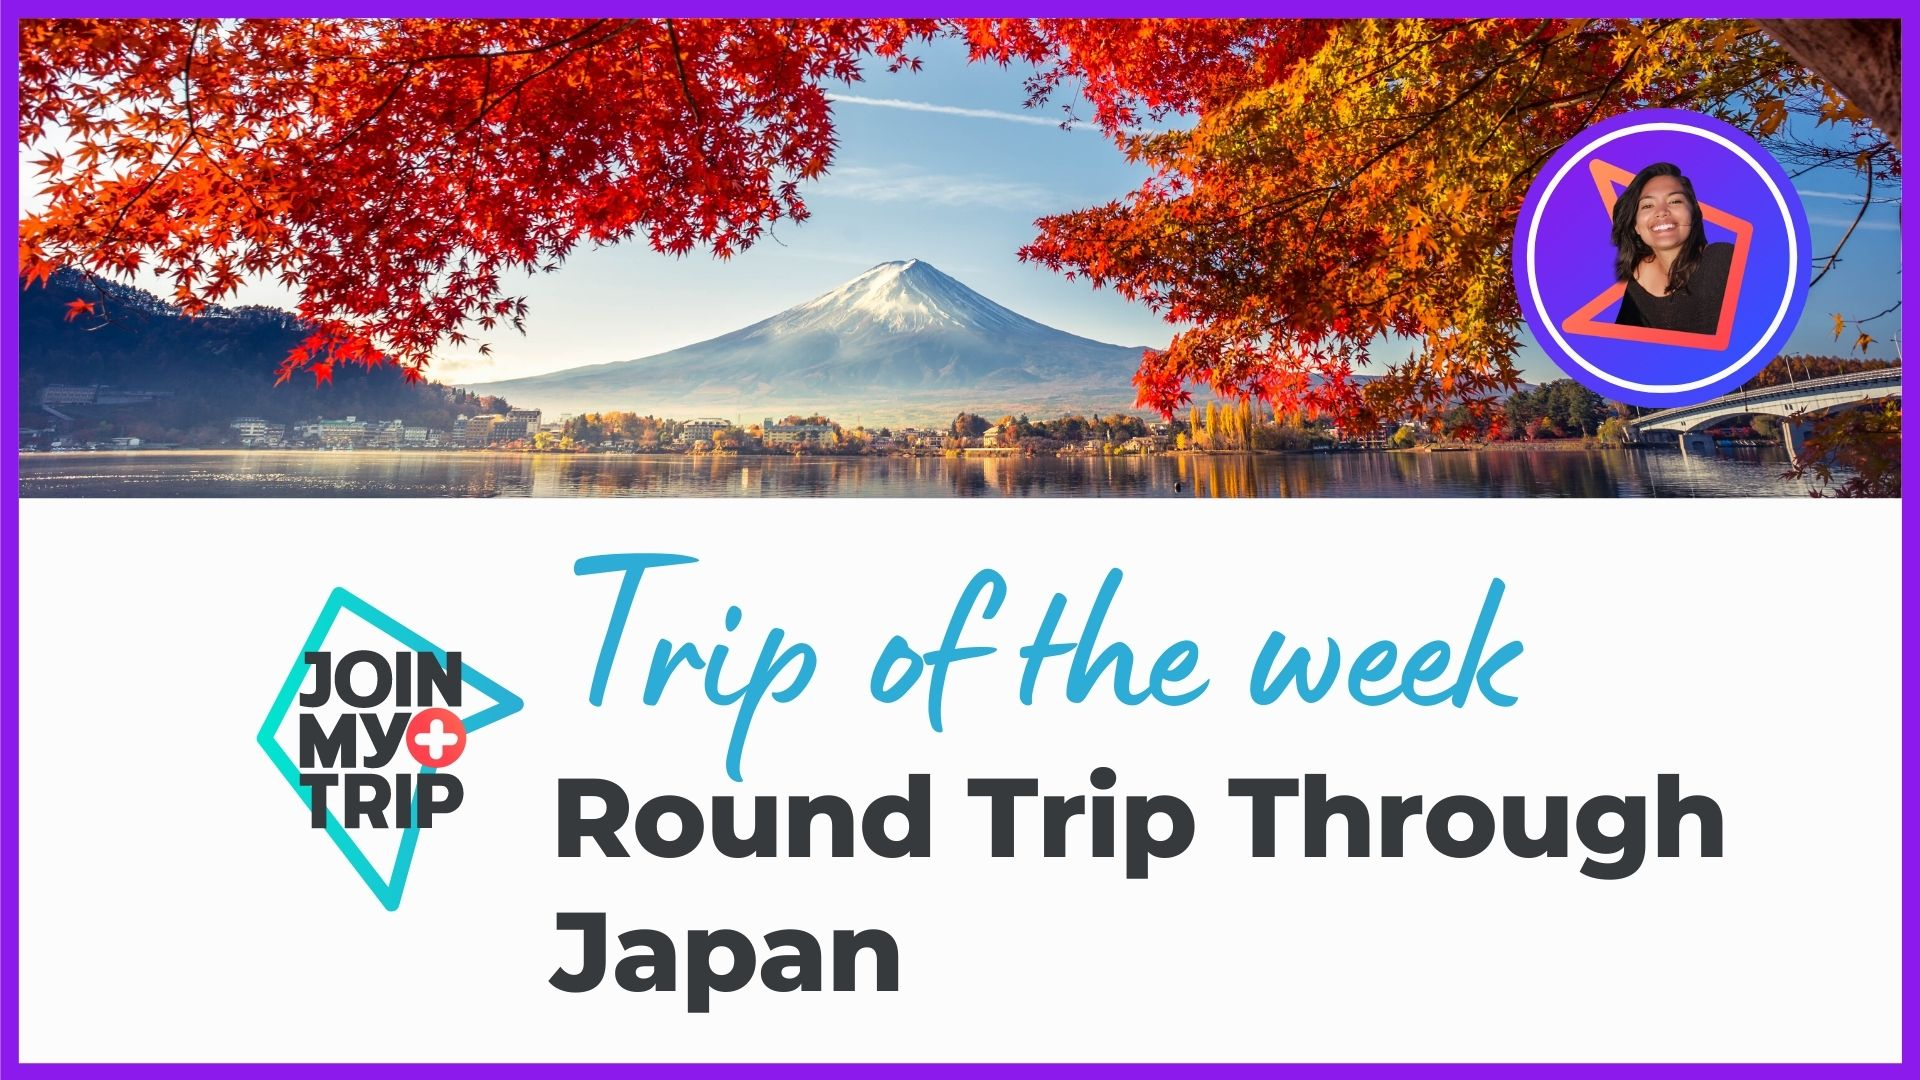 Round trip through Japan in the trip of the week episode.